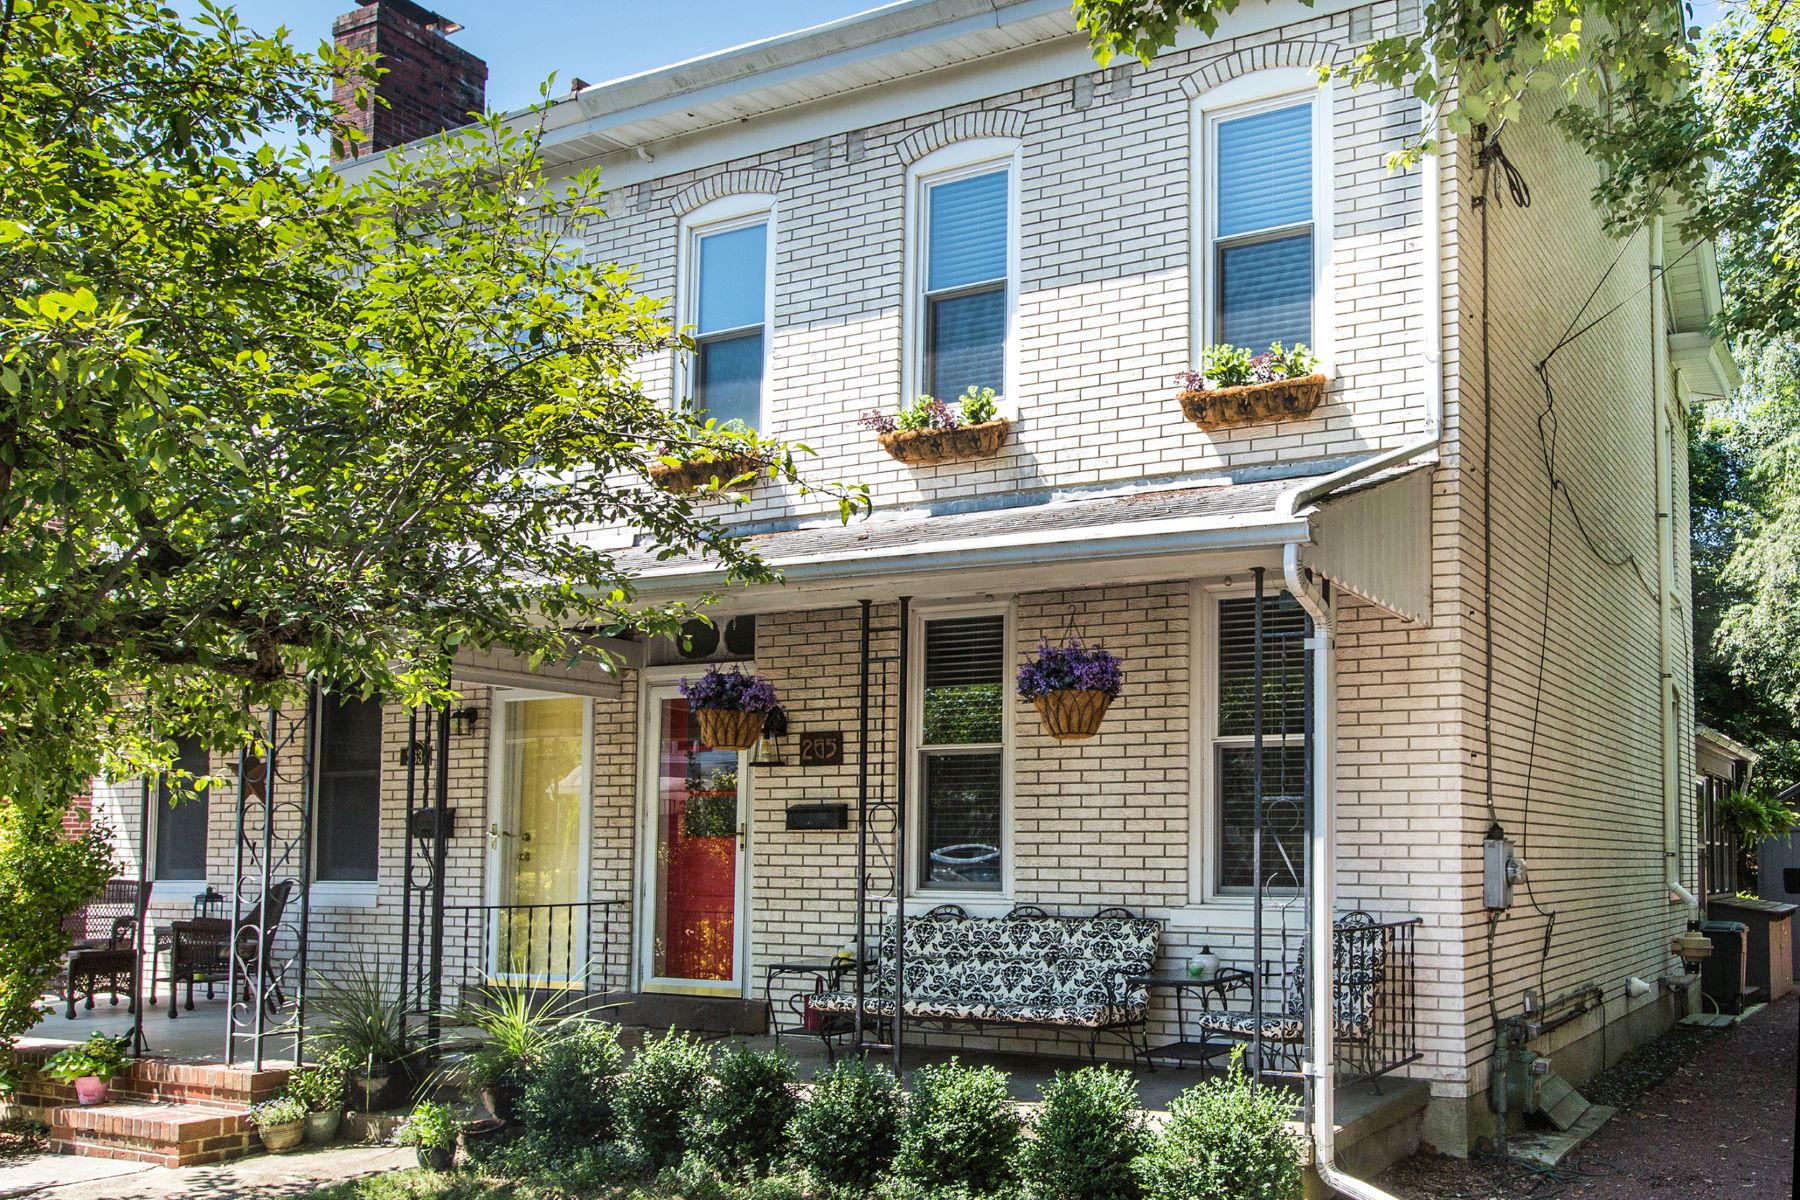 House for Sale at Union Street Gem 265 N UNION ST Lambertville, New Jersey 08530 United States